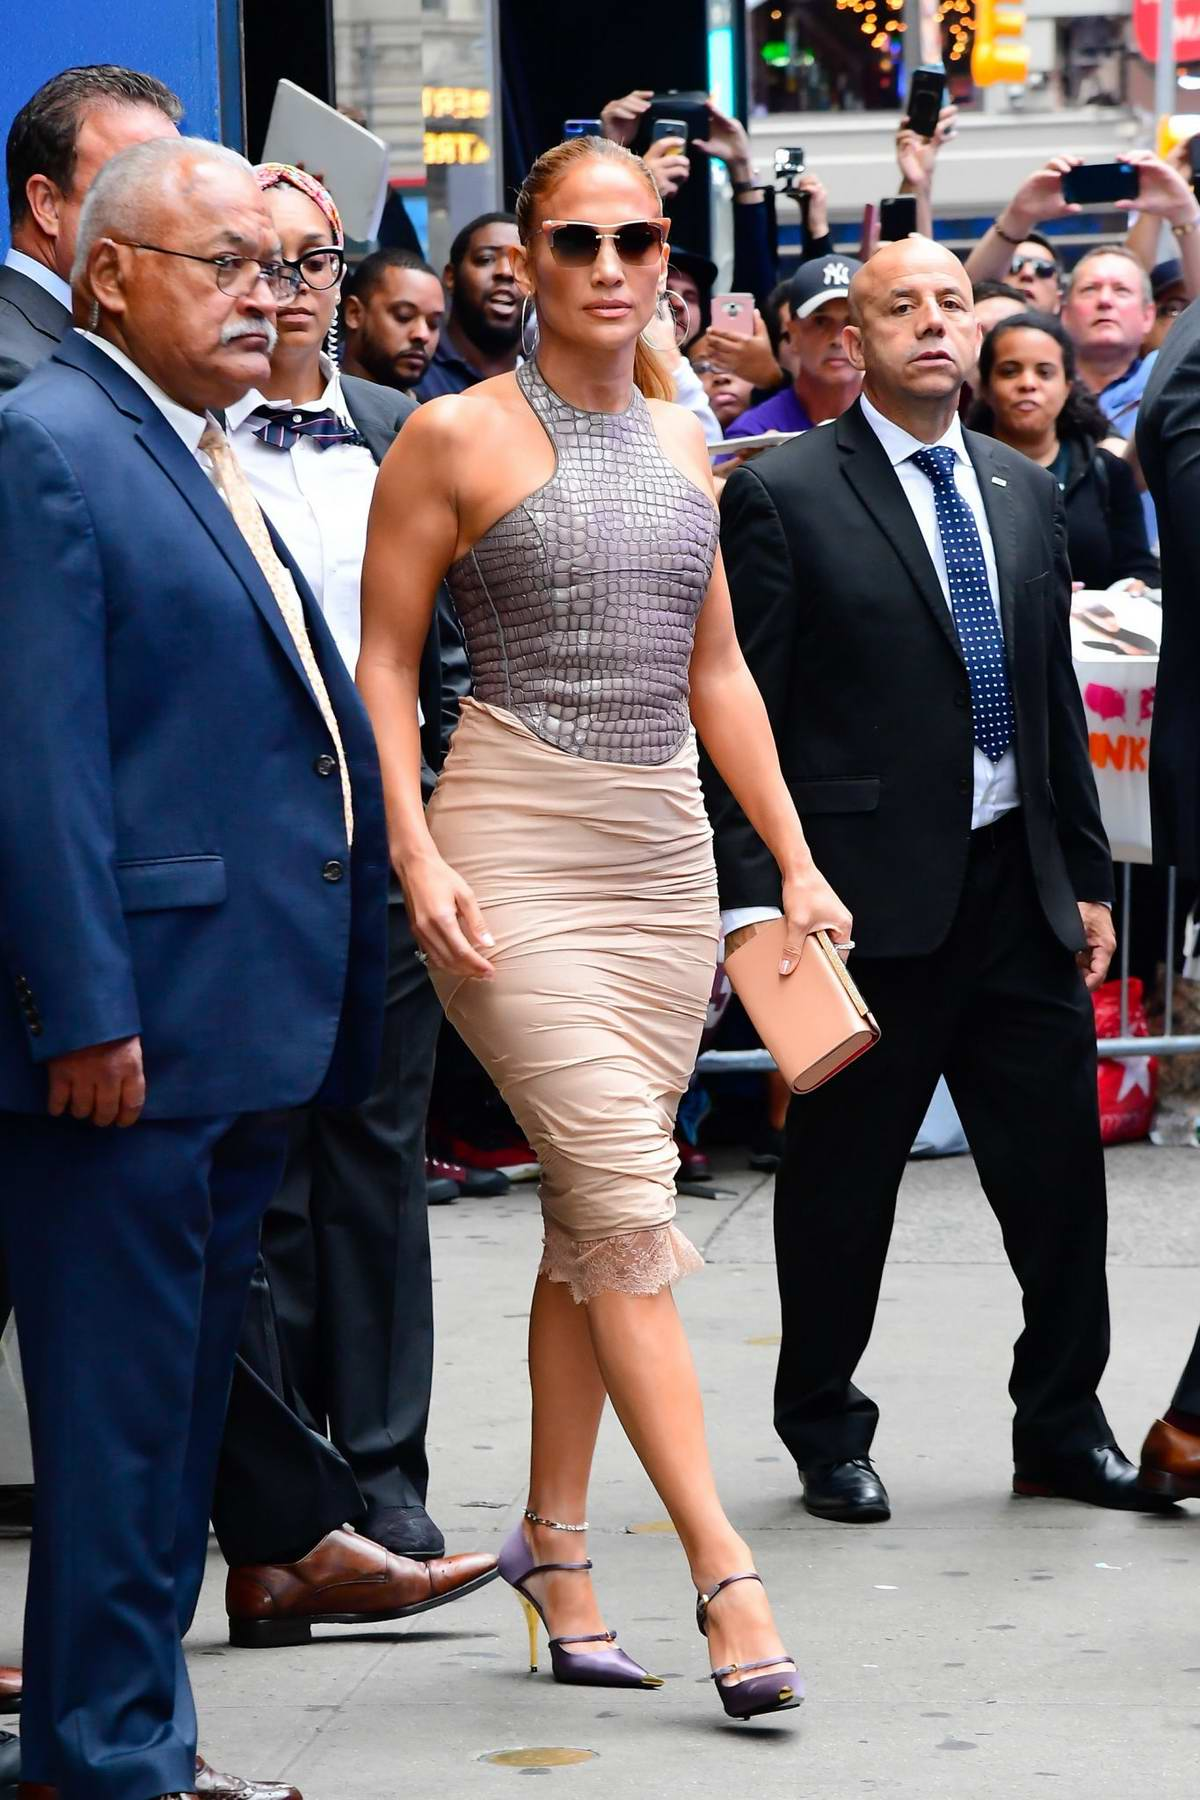 Jennifer Lopez looks great in a skin-tight leather top and beige skirt as she leaves 'Good Morning America' in New York City